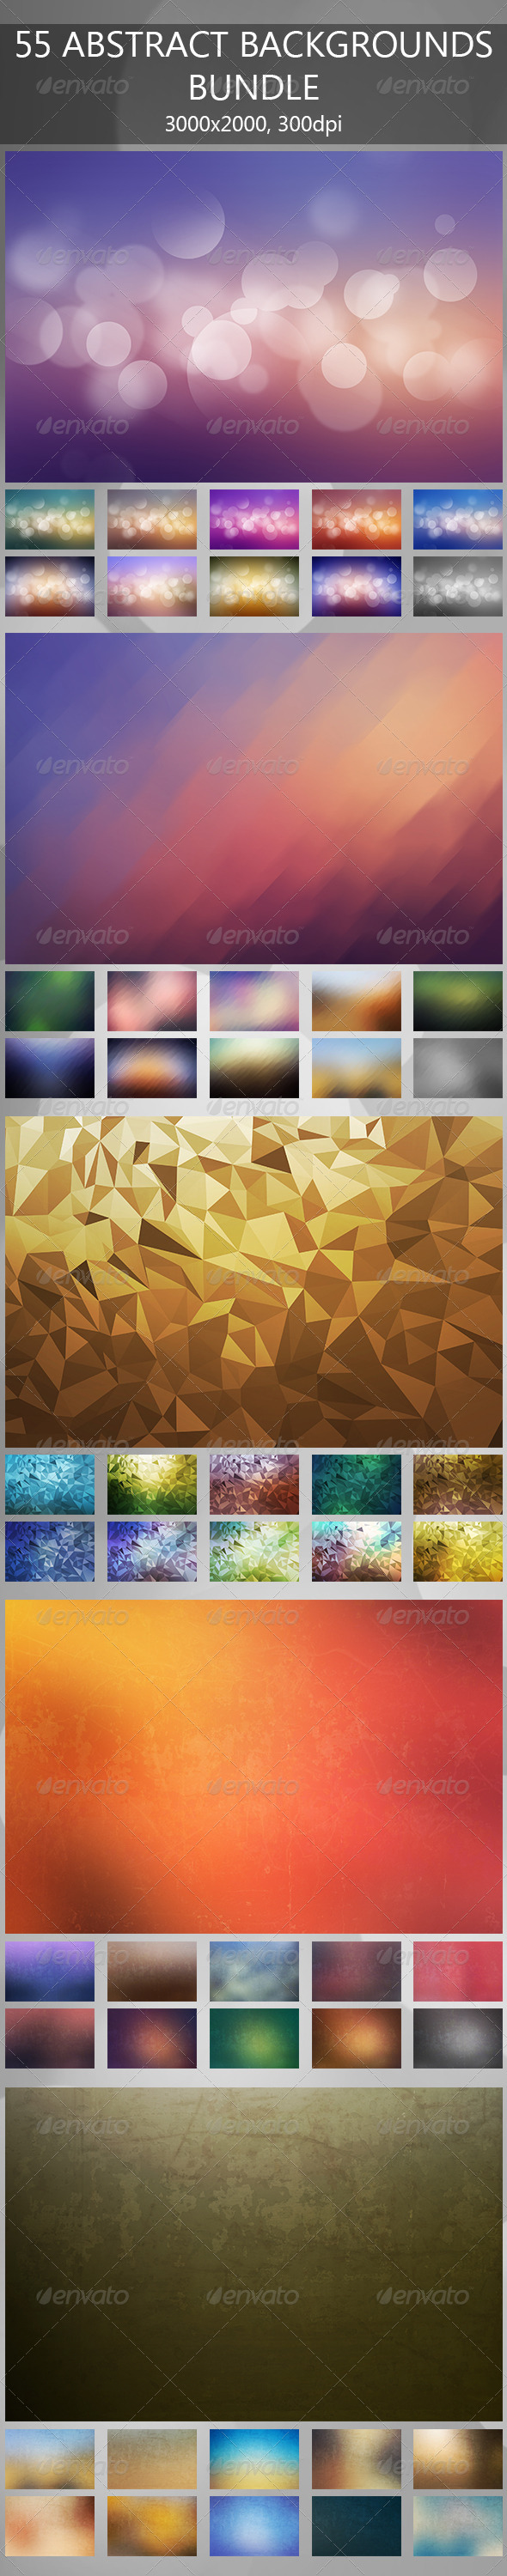 GraphicRiver 55 Abstract Backgrounds Bundle 7873101